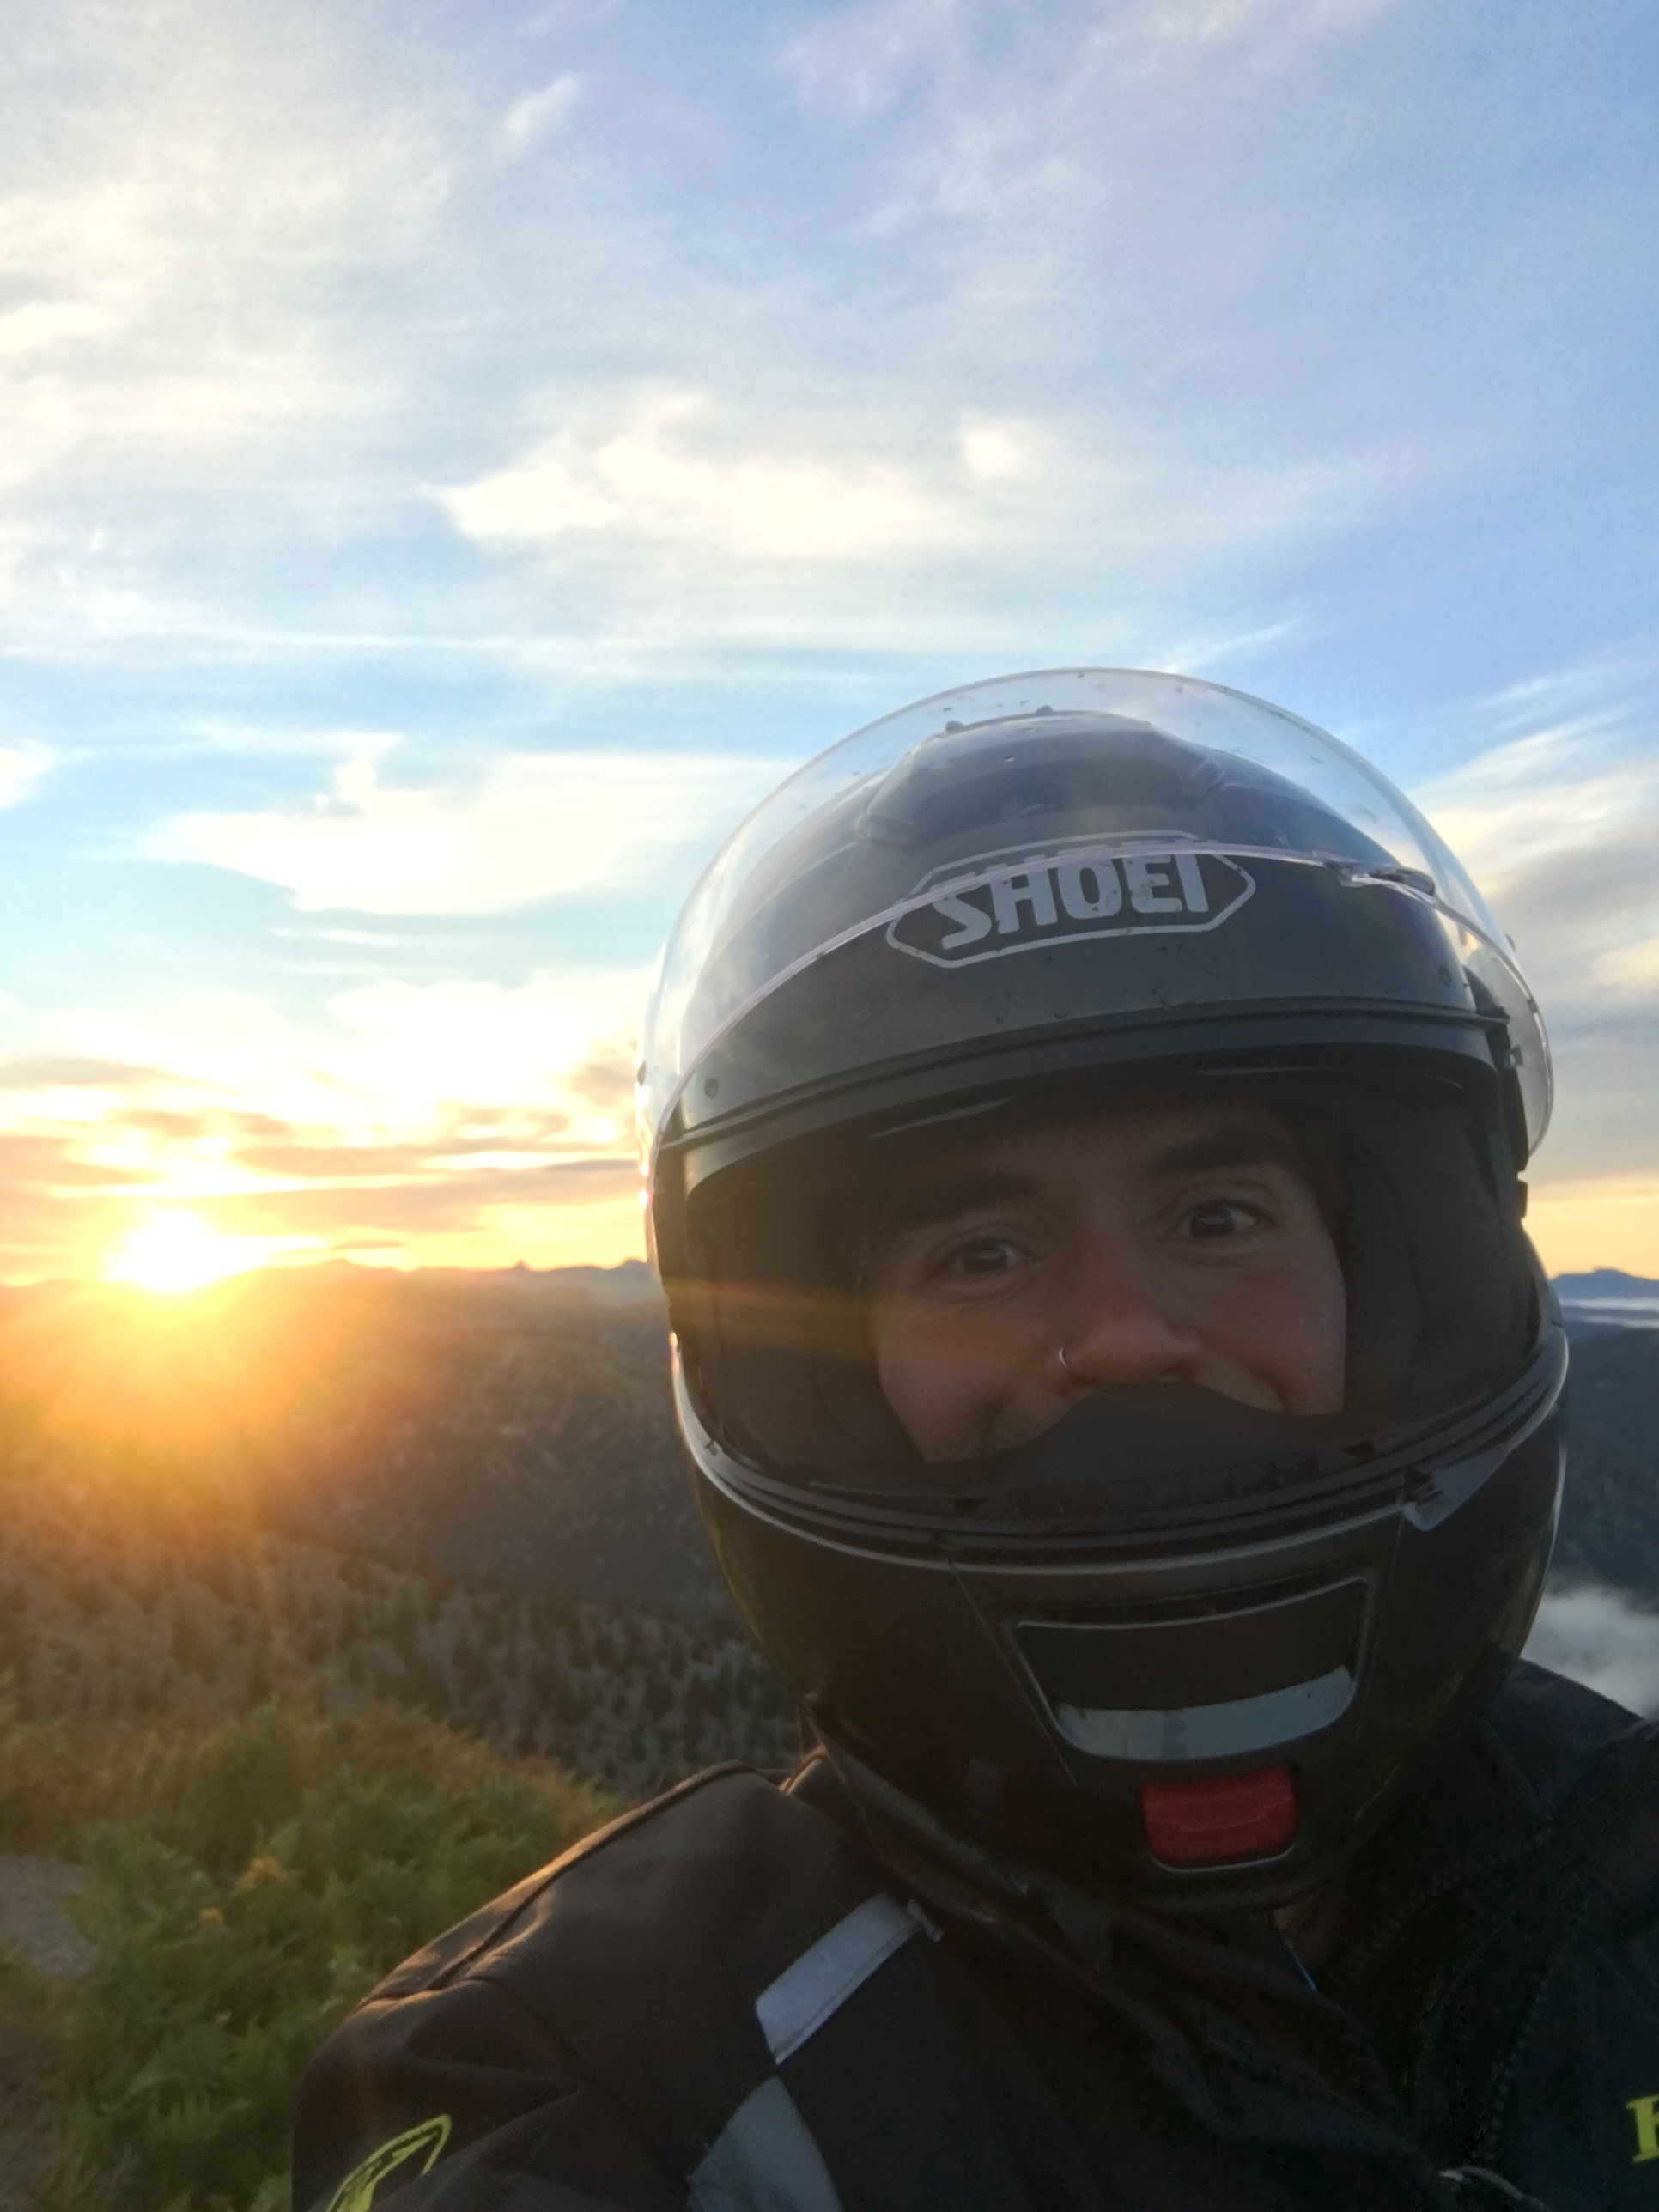 "I am not a big real early morning person, but here I have been up since 4:45. I'm already packed up, geared up and have ridden up the road to watch what turned out to be one of the epic sunrises of my life on Windy Ridge near Mt. Saint Helens. Words cannot describe how happy I am here. This is the last morning of my 5 week tour and I'm so glad I rallied and got out of the warm sleeping bag to experience this. You know, ""going confidently in the direction of our dreams""!"